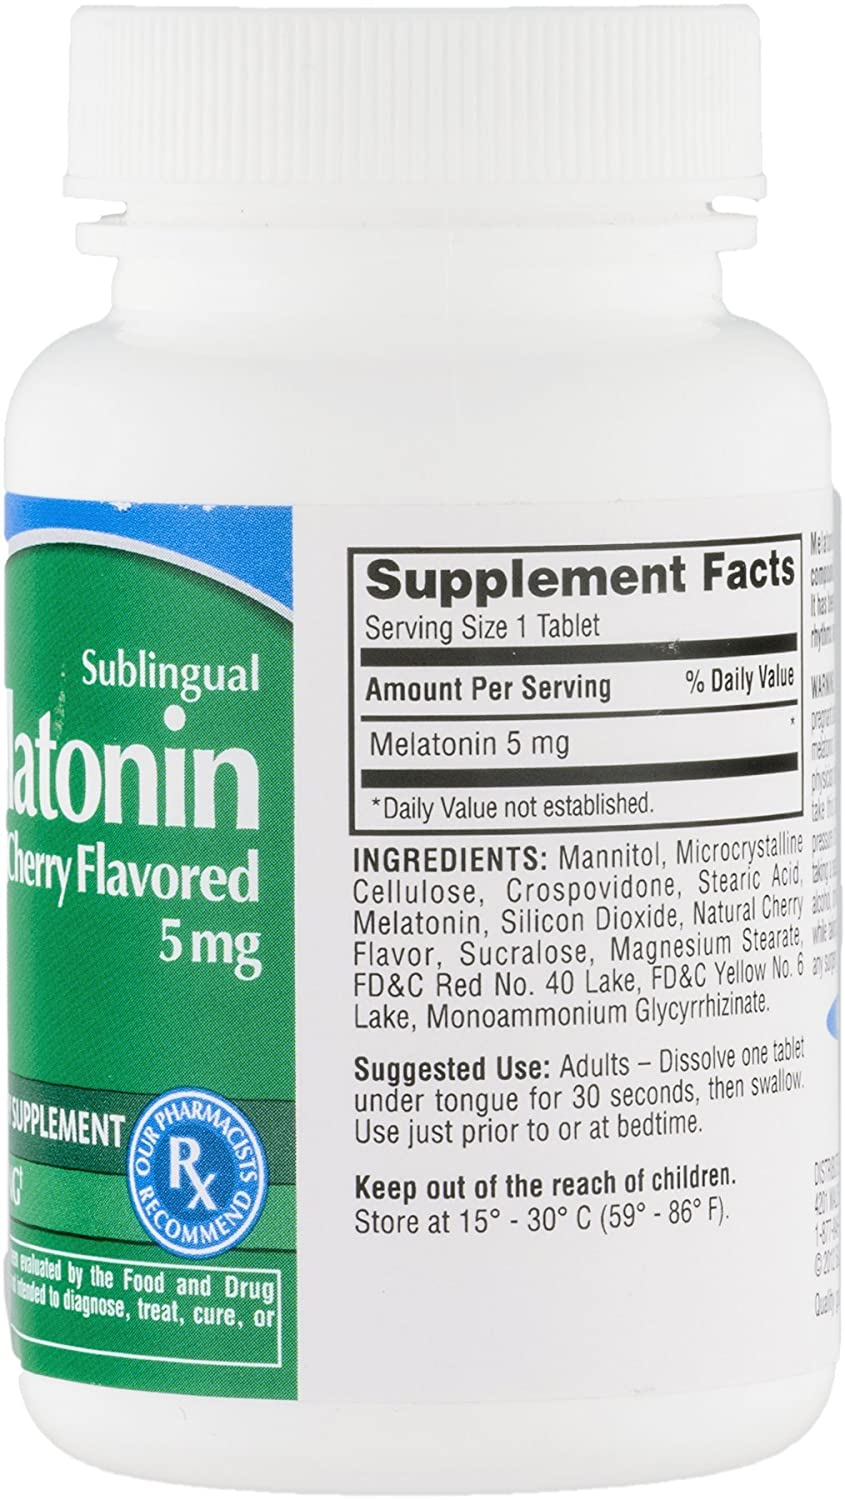 Amazon.com: CareOne Sublingual Melatonin Tablets Cherry Flavored 5 mg - 60 CT: Health & Personal Care